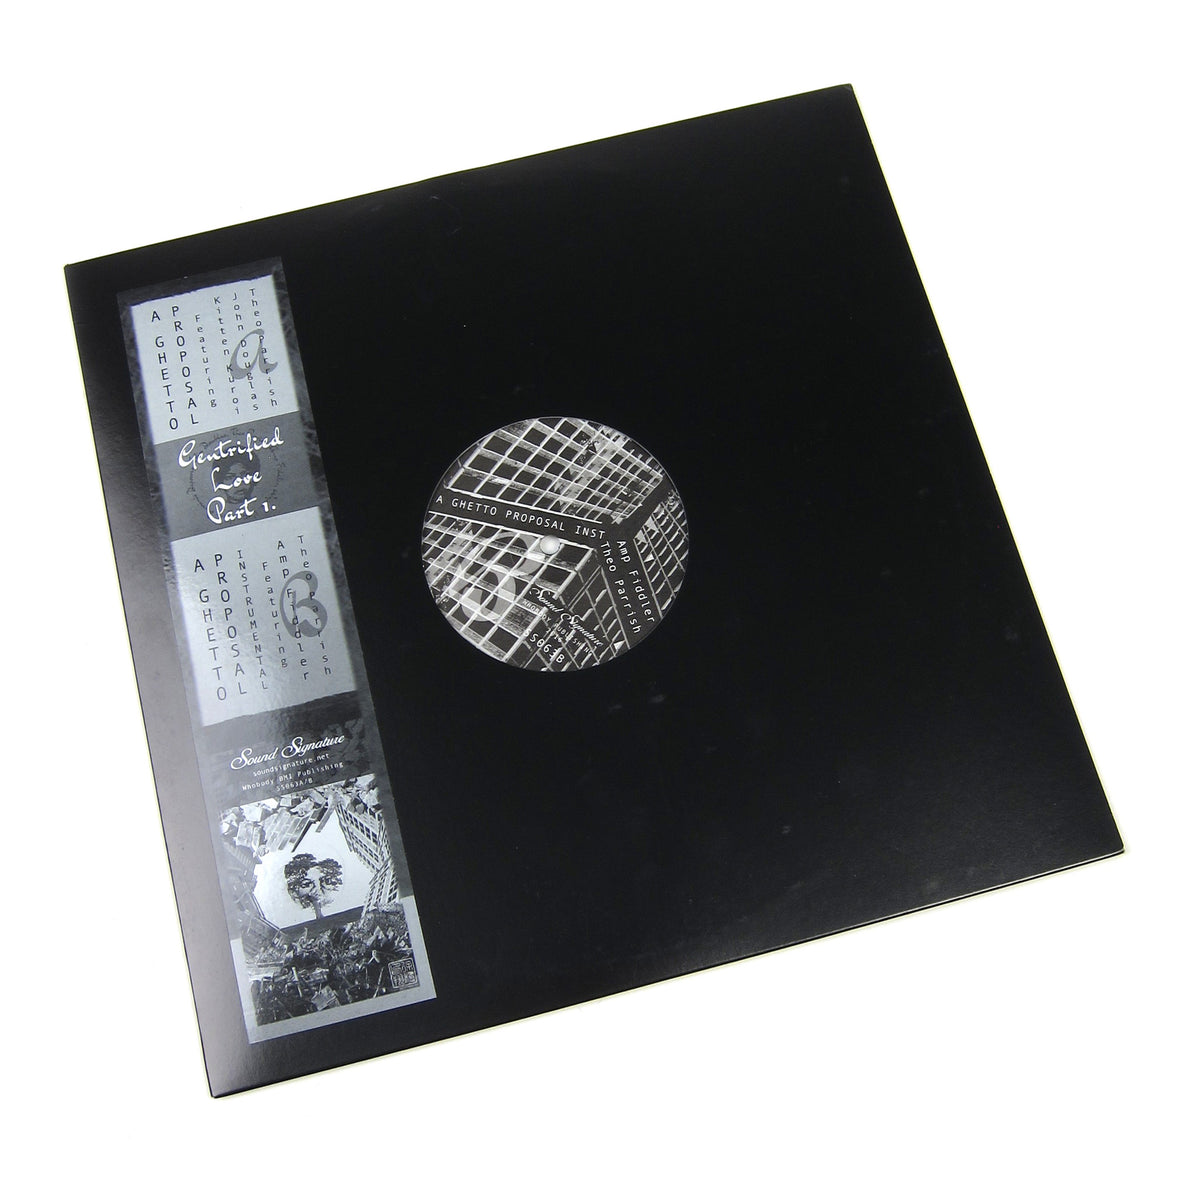 Theo Parrish: Gentrified Love Part 1 Vinyl 12""